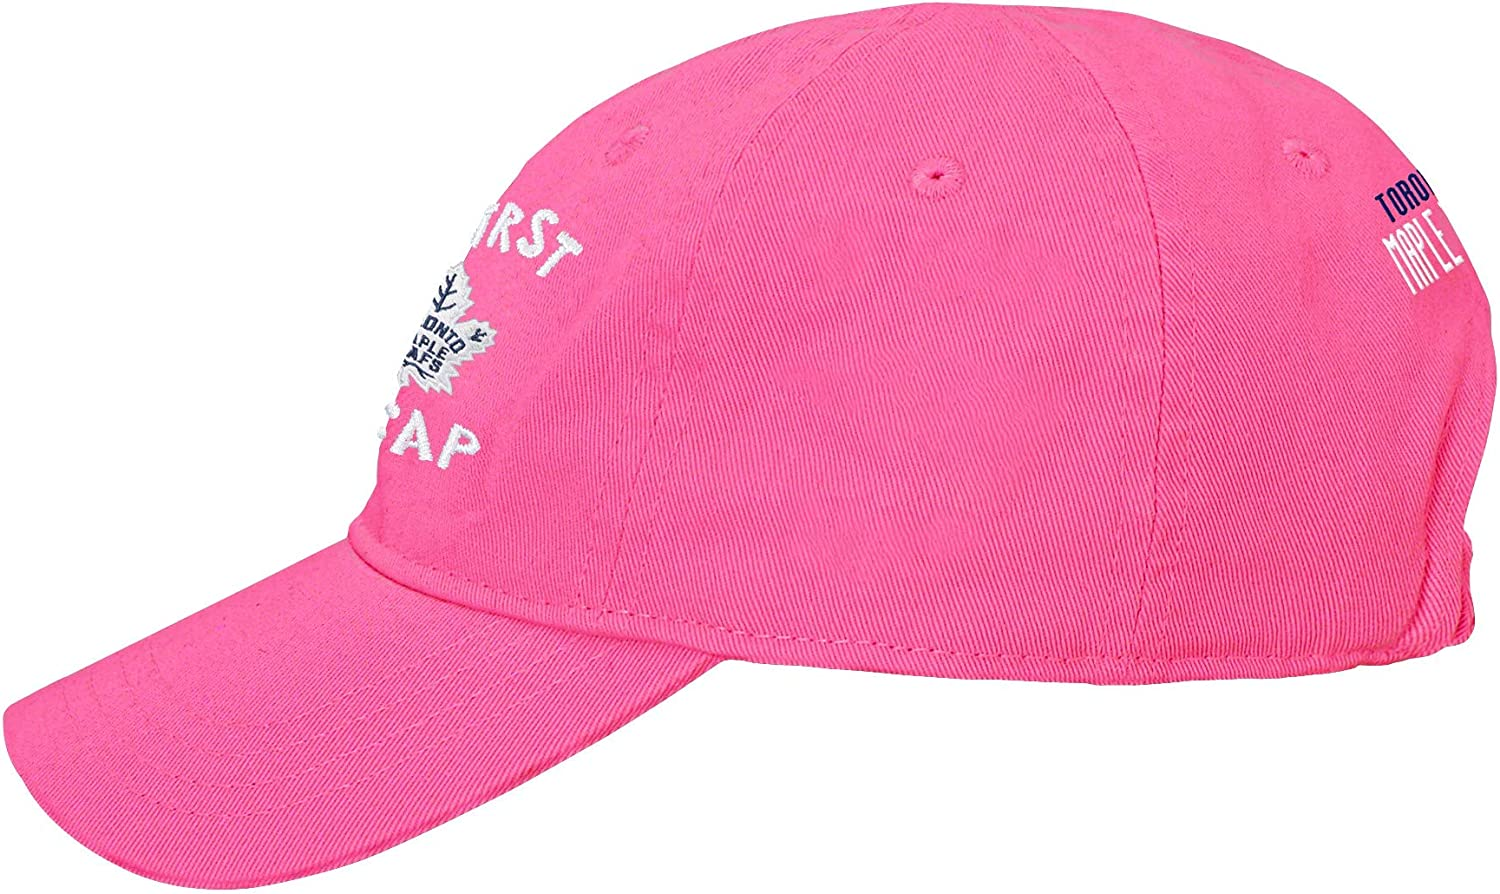 Toronto Maple Leafs NHL Hockey My First Infant Slouch Stretchable Elastic Stretch Cap Pink